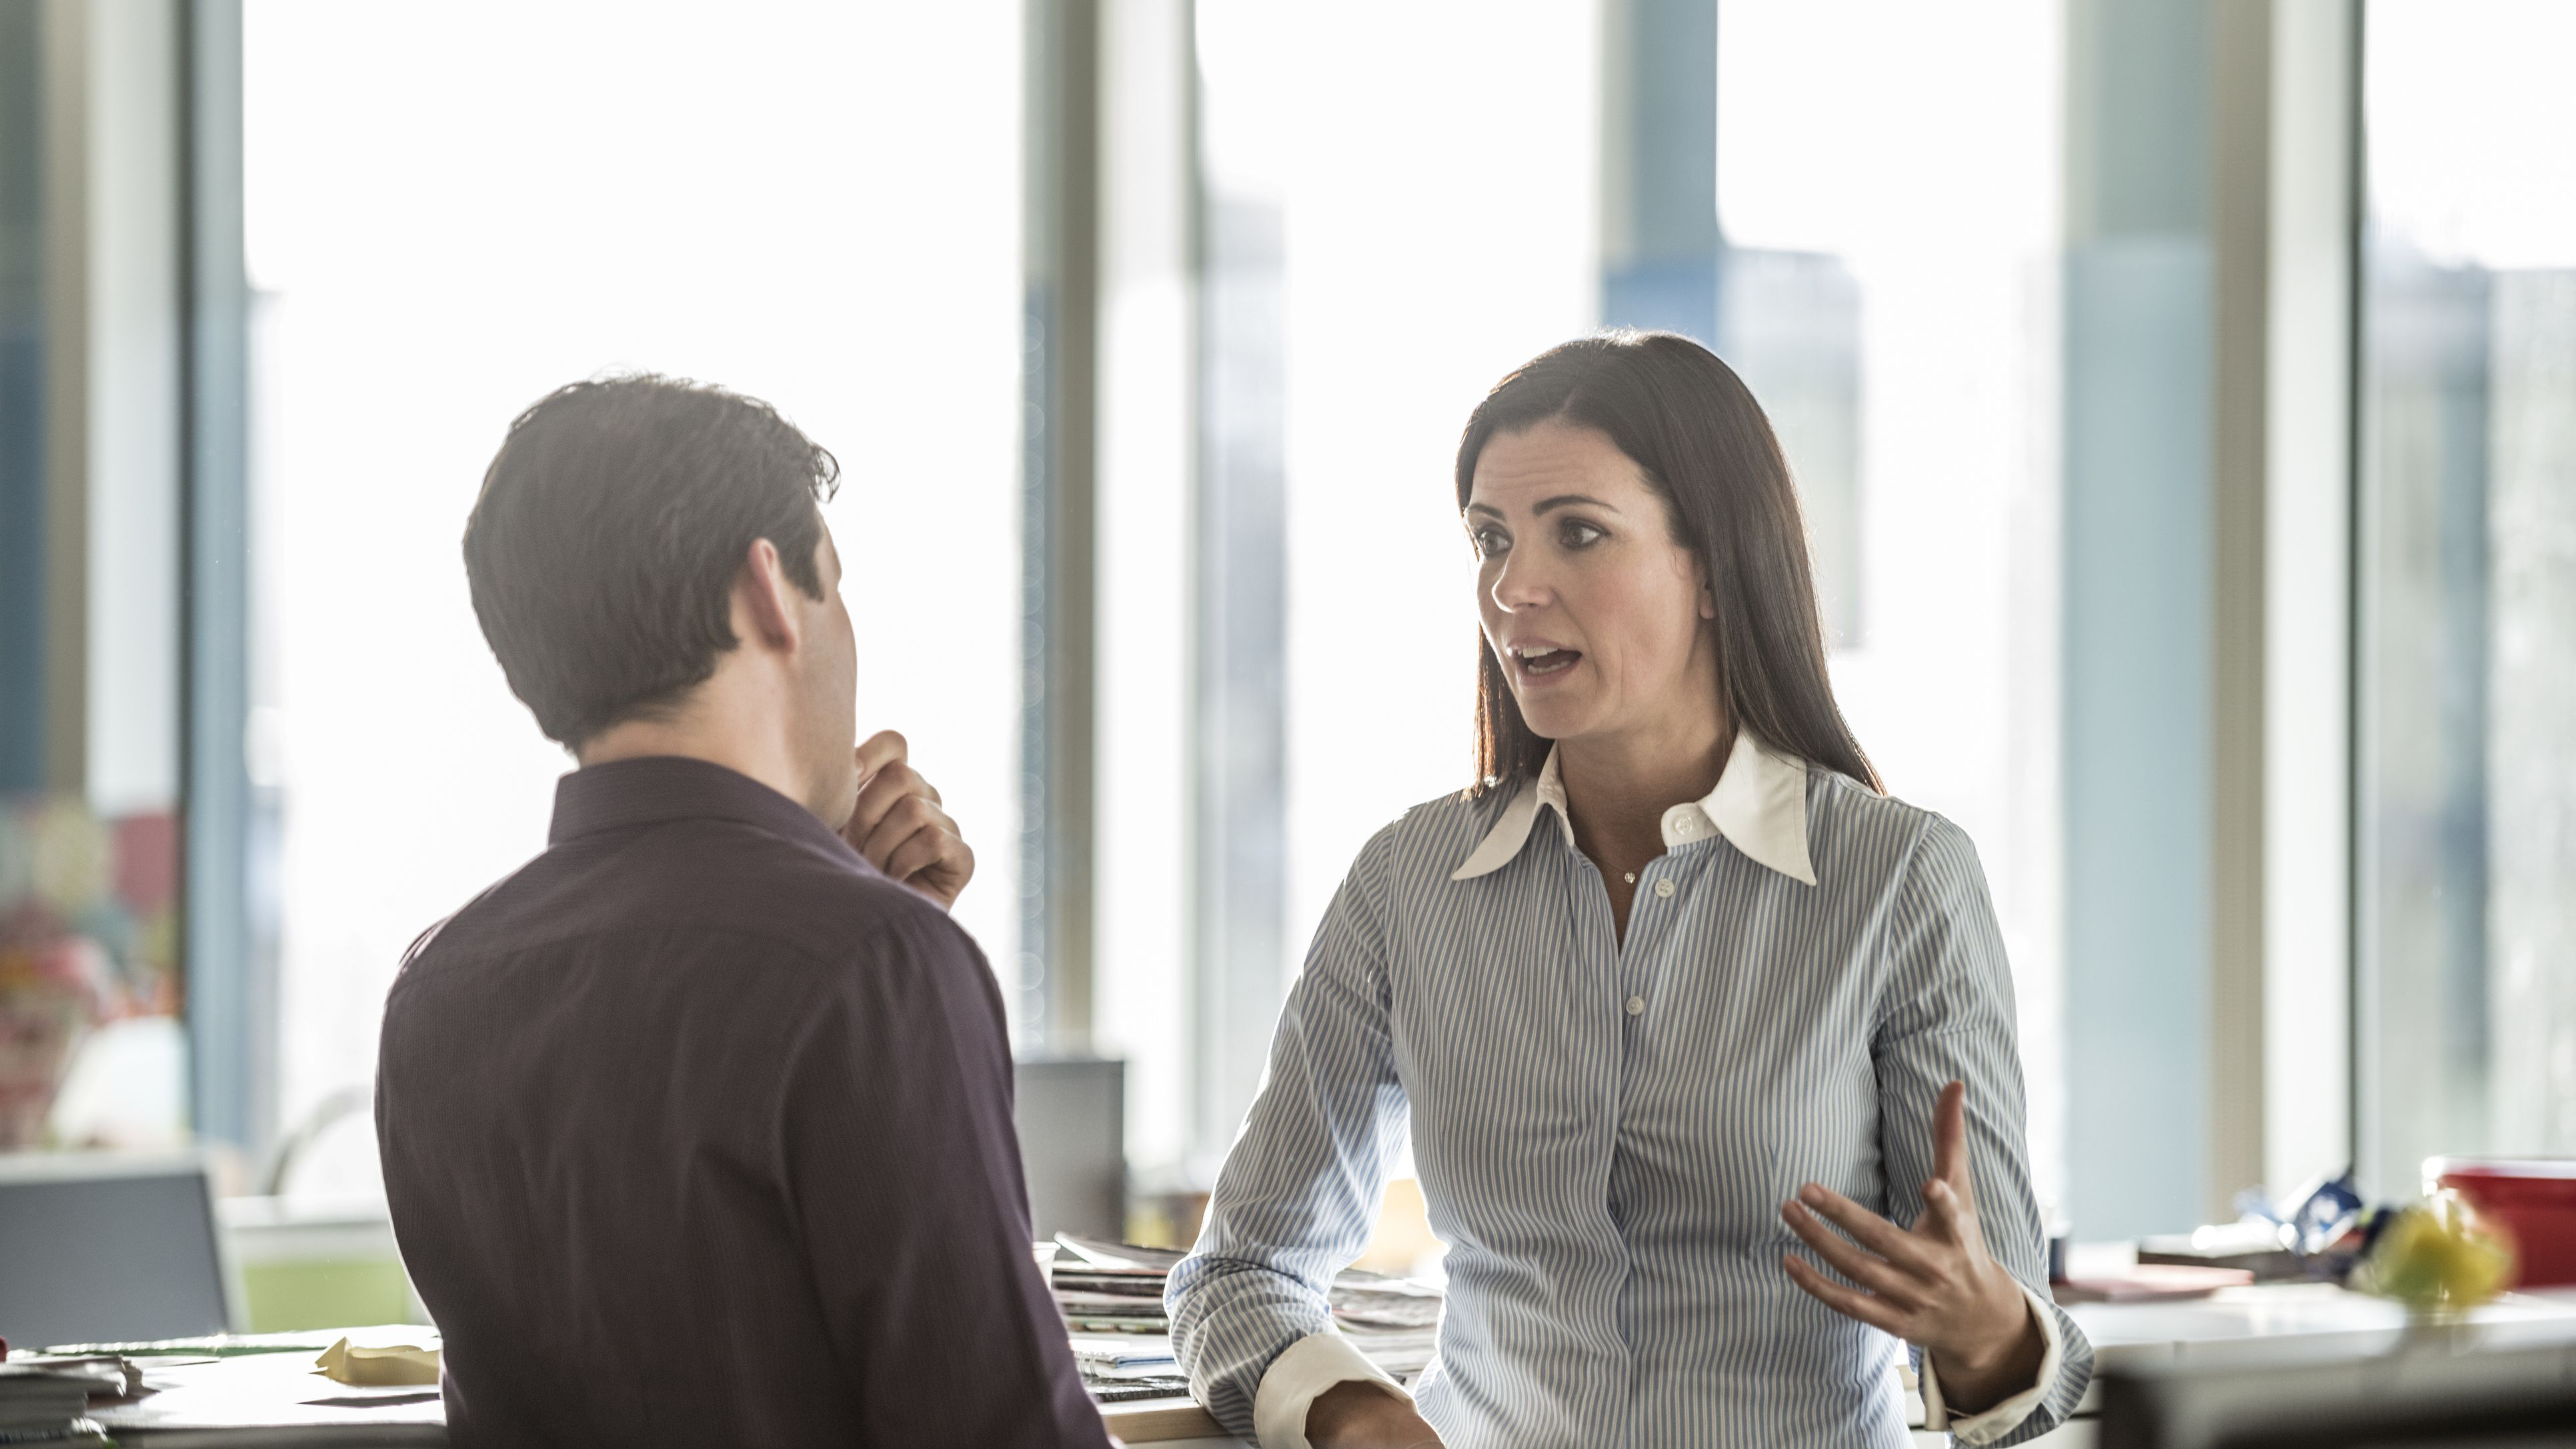 two-business-people-having-serious-discussion-in-the-office